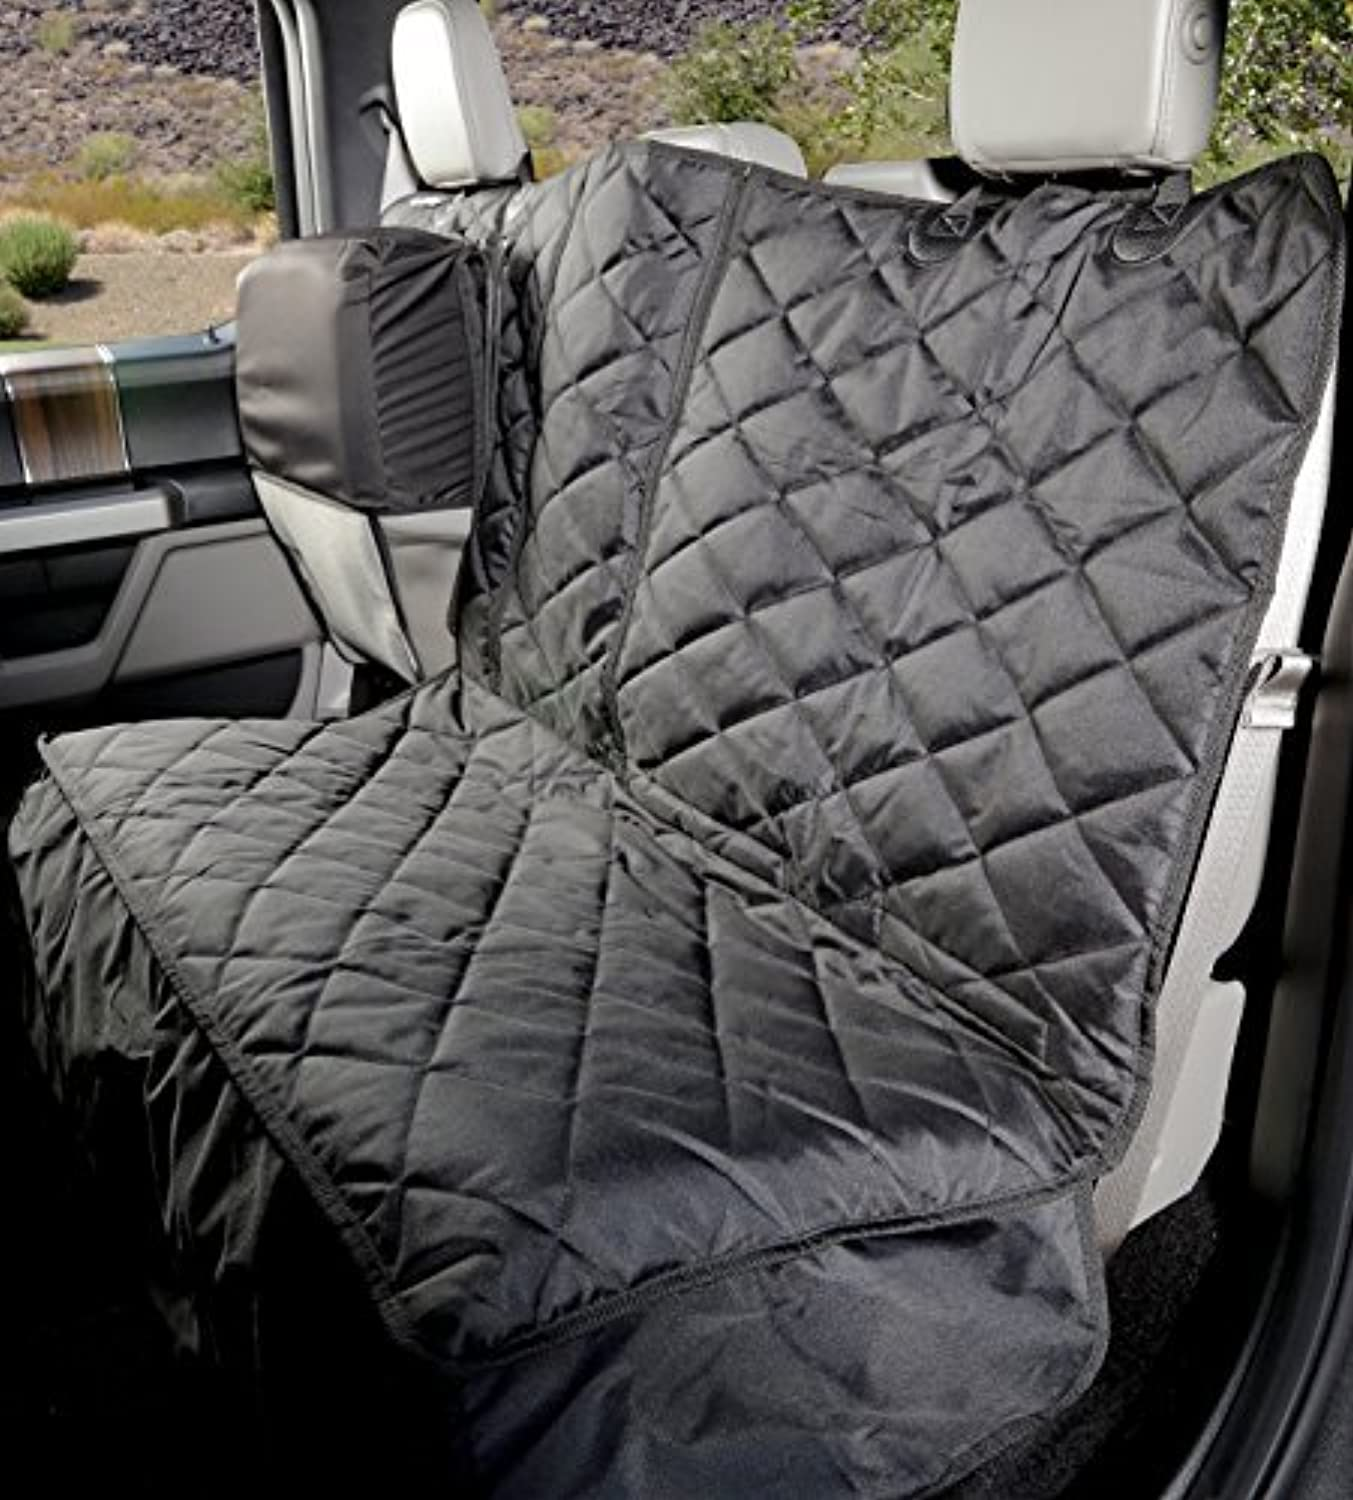 4Knines Crew Cab Rear Bench Seat Cover with Hammock - Heavy Duty - Waterproof